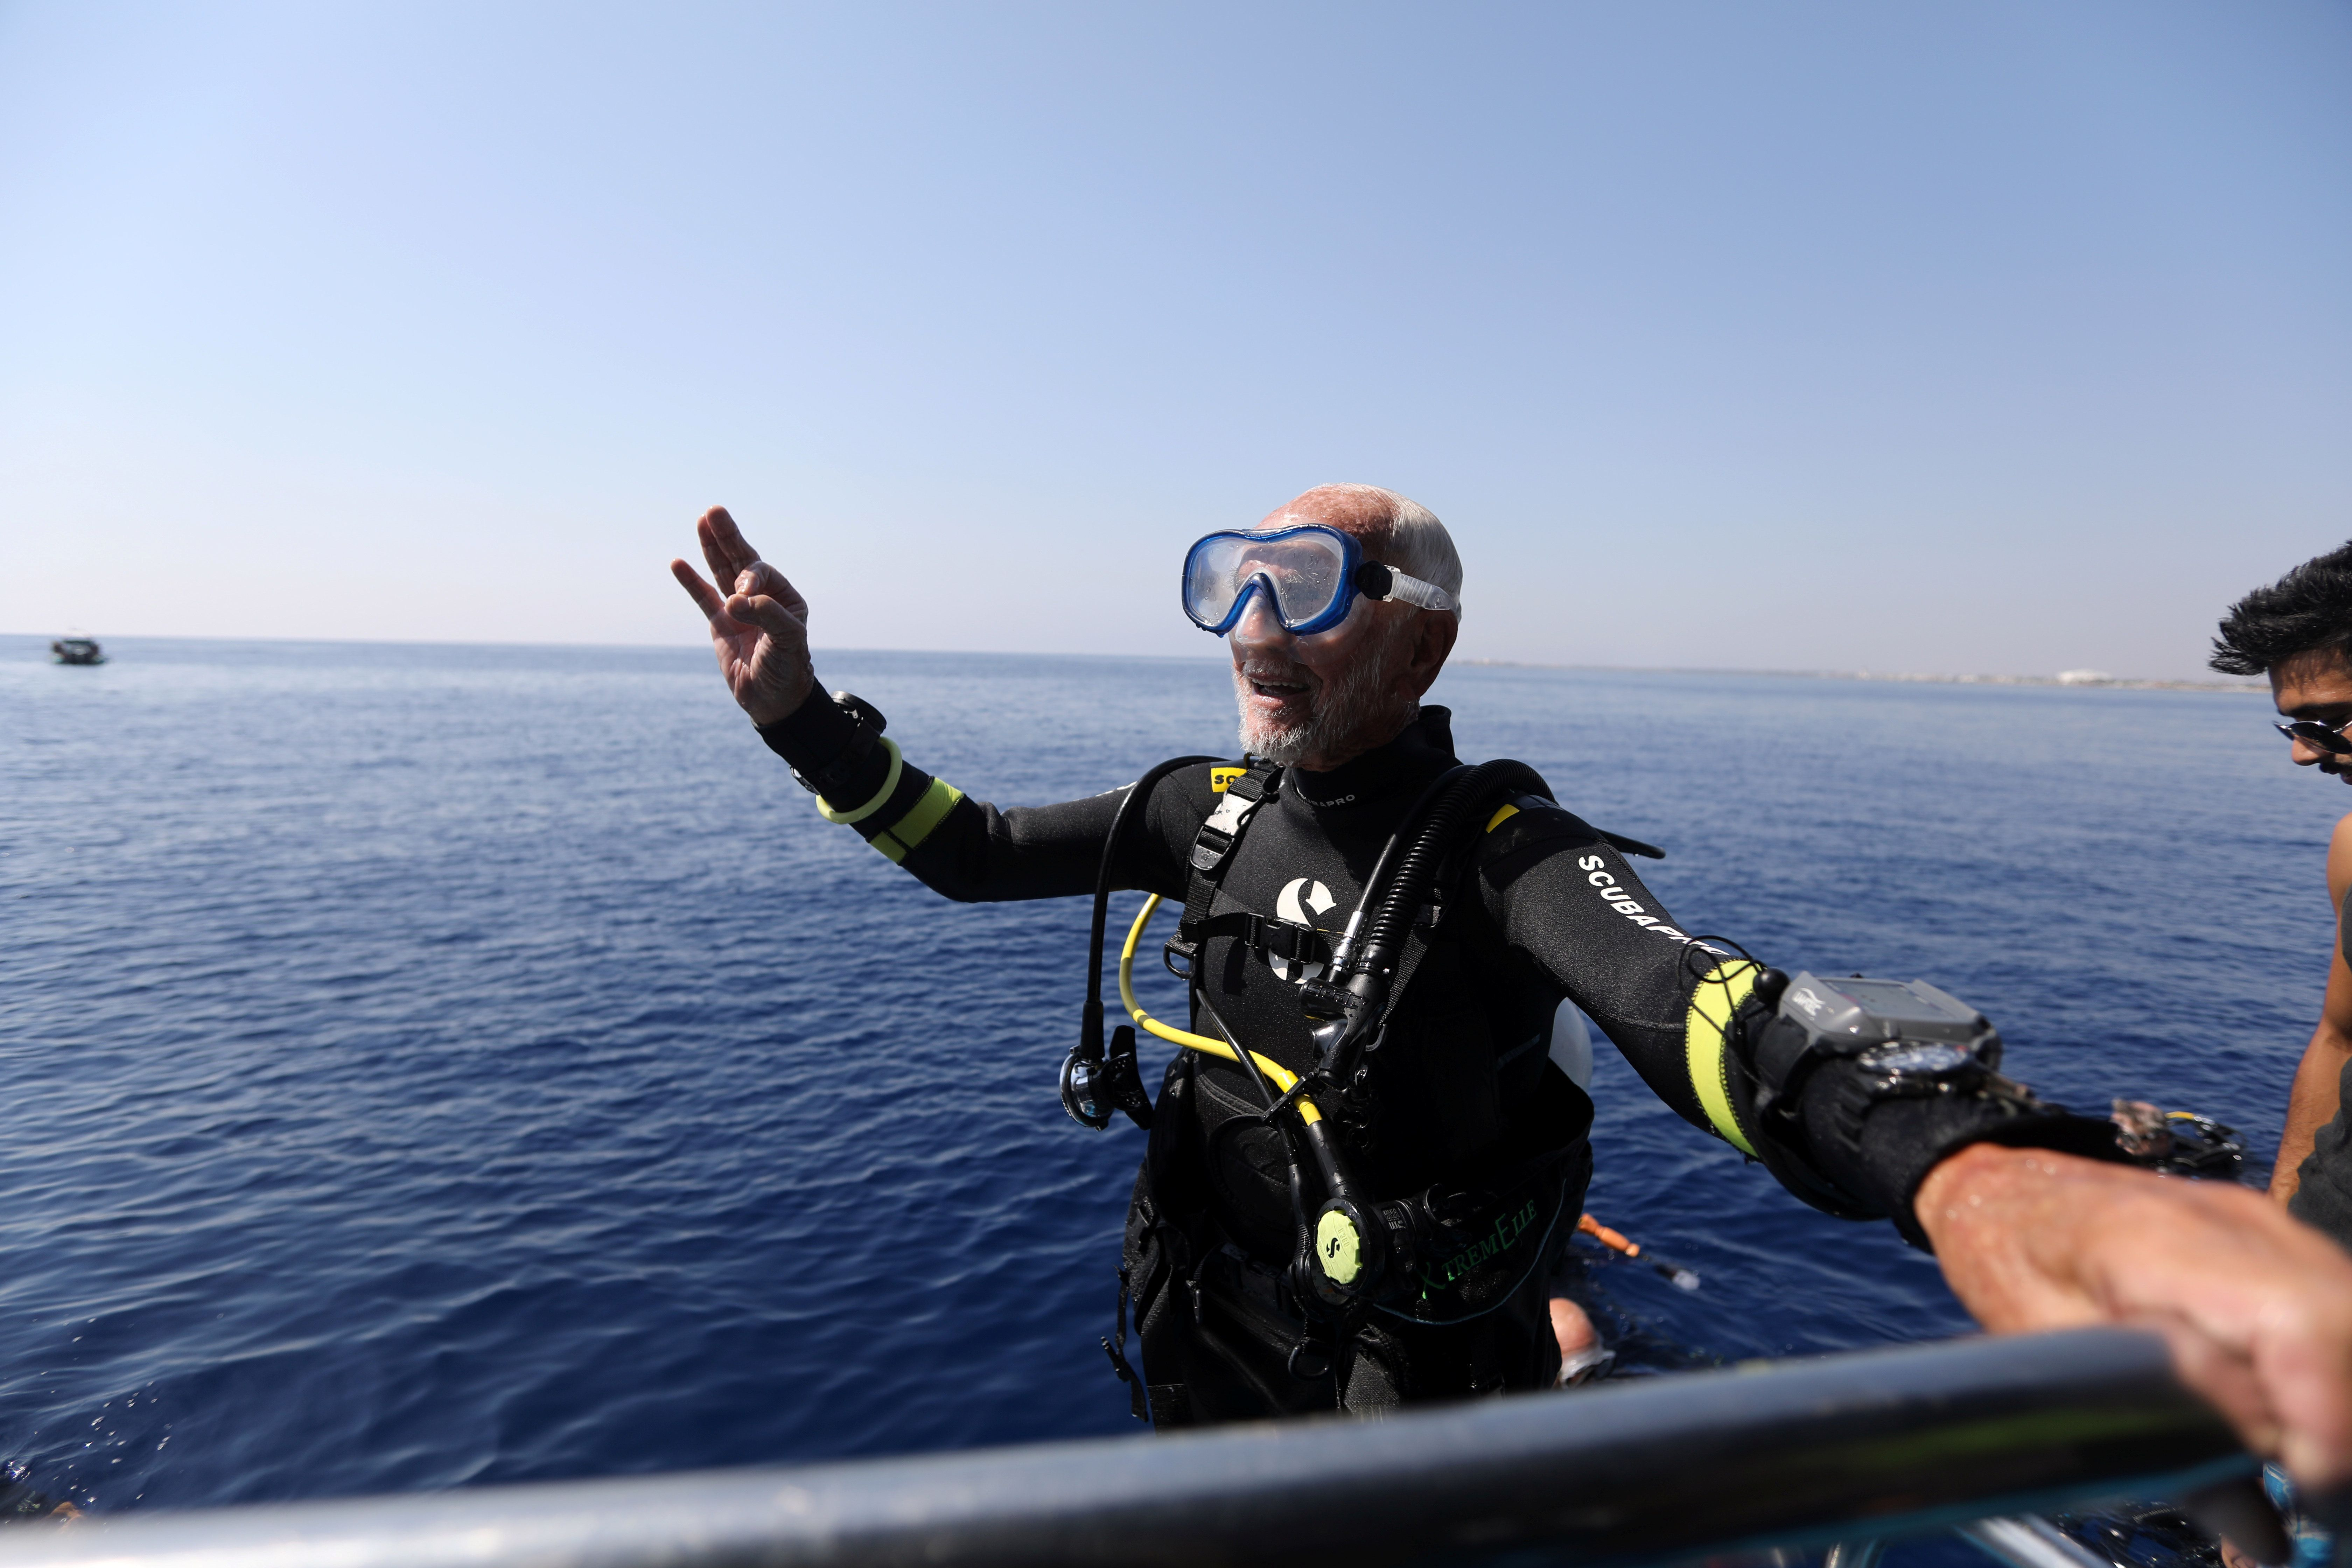 95-Year-Old Veteran Sets Record As World's Oldest Scuba